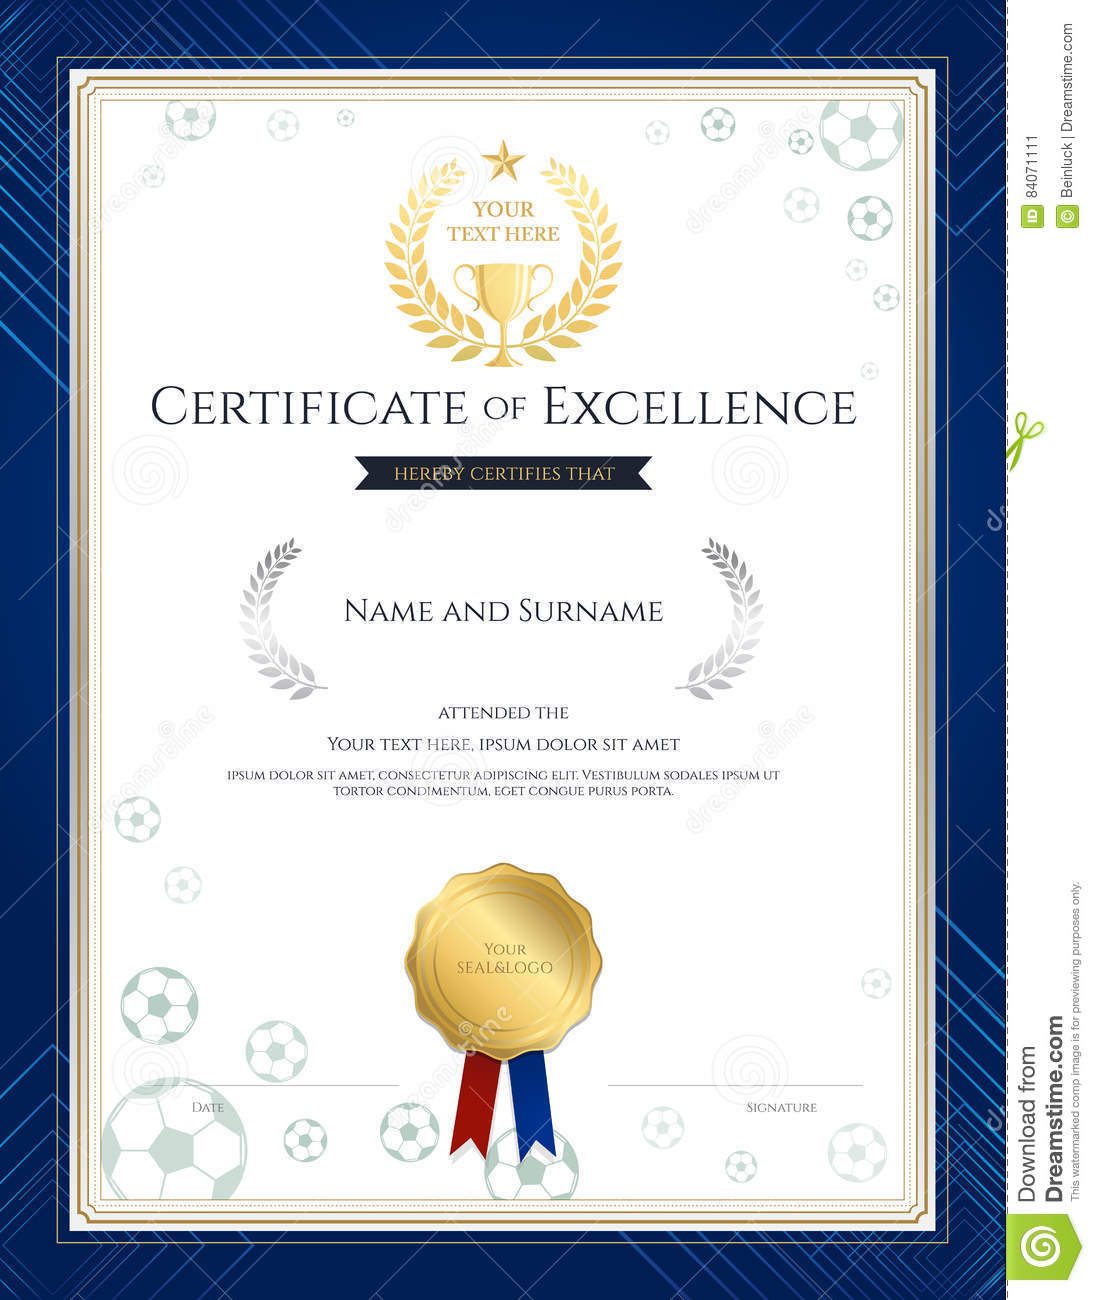 Portrait Certificate Of Excellence Template In Sport Theme For F Stock  Vector   Illustration Of Award, Honor: 84071111